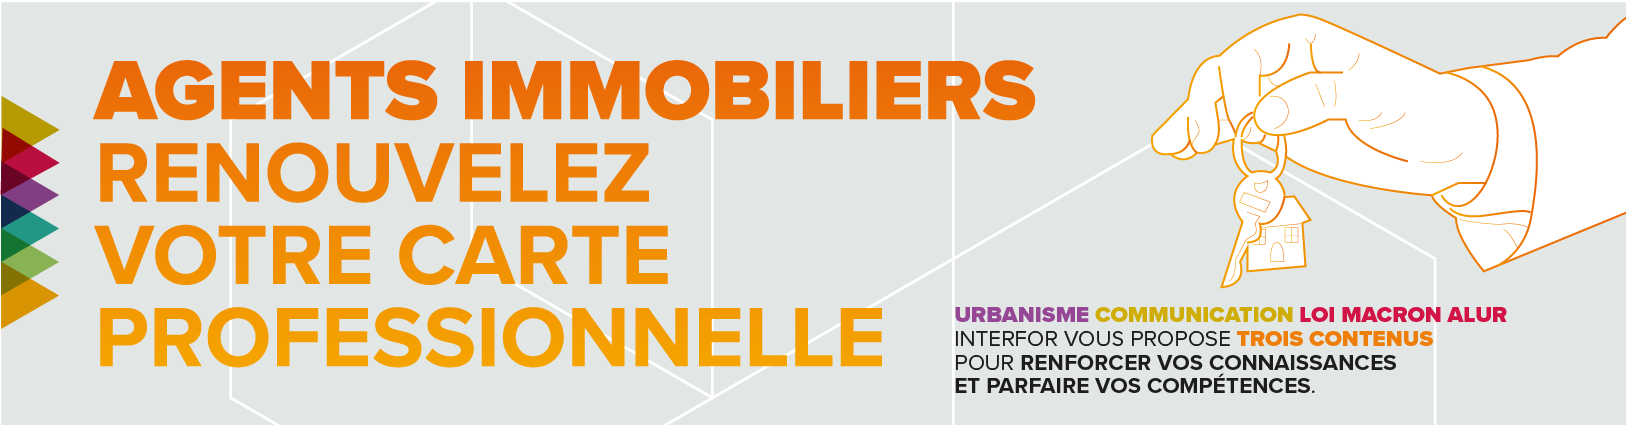 Formation immobilier - Interfor Formation Continue